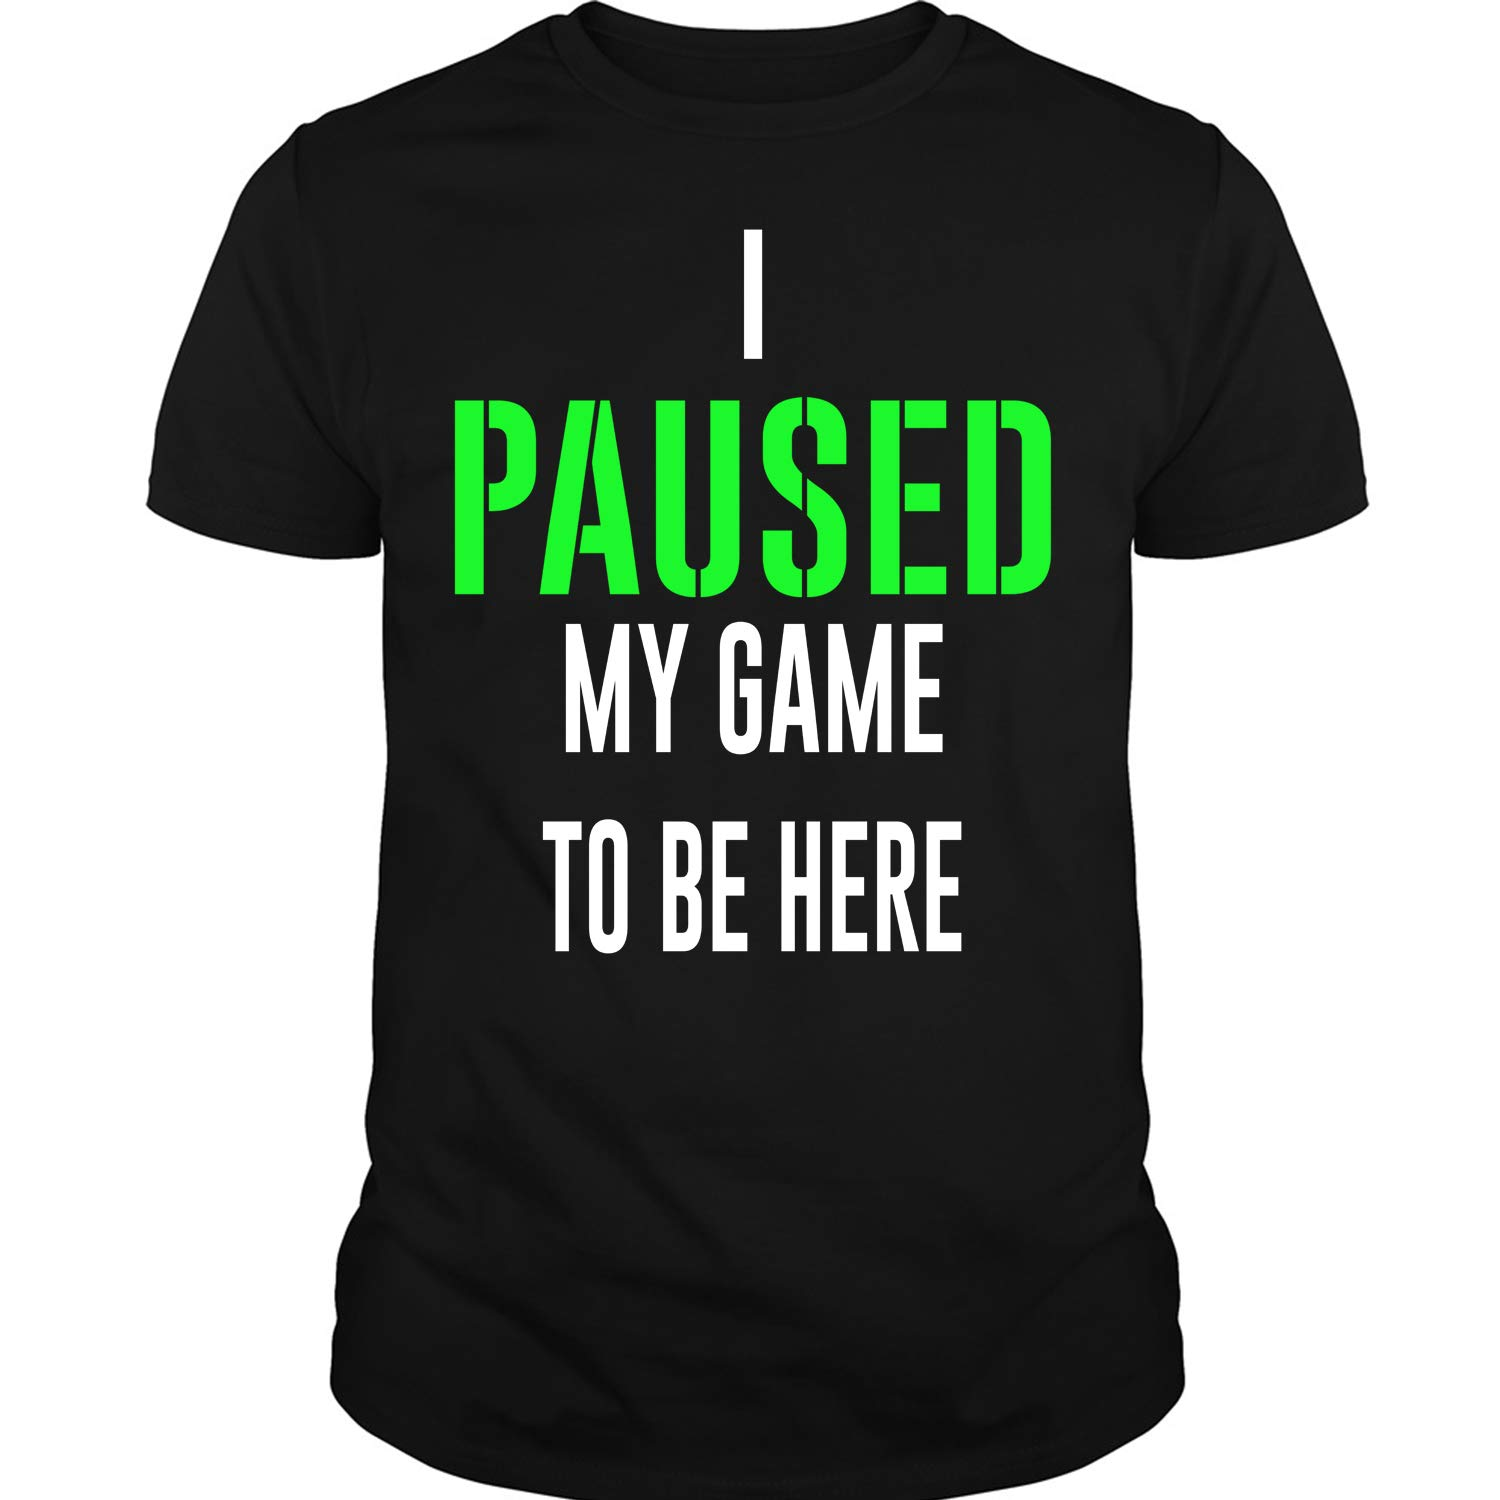 I Paused My Game To Be Here T Shirt I Love Game T Shirt